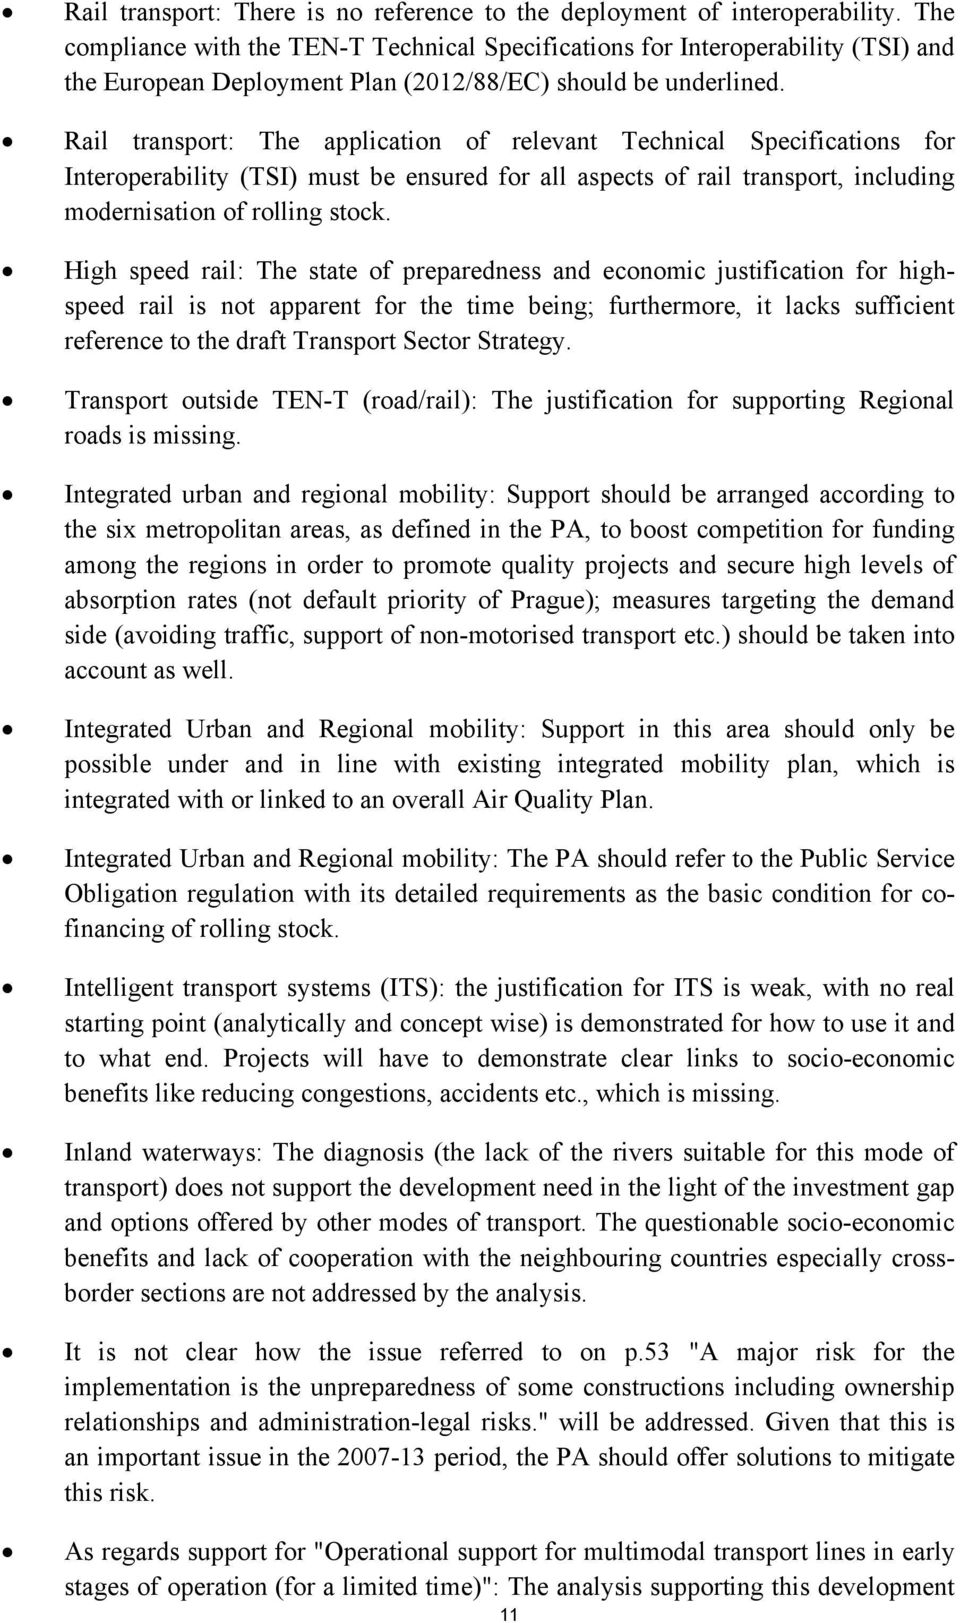 Rail transport: The application of relevant Technical Specifications for Interoperability (TSI) must be ensured for all aspects of rail transport, including modernisation of rolling stock.